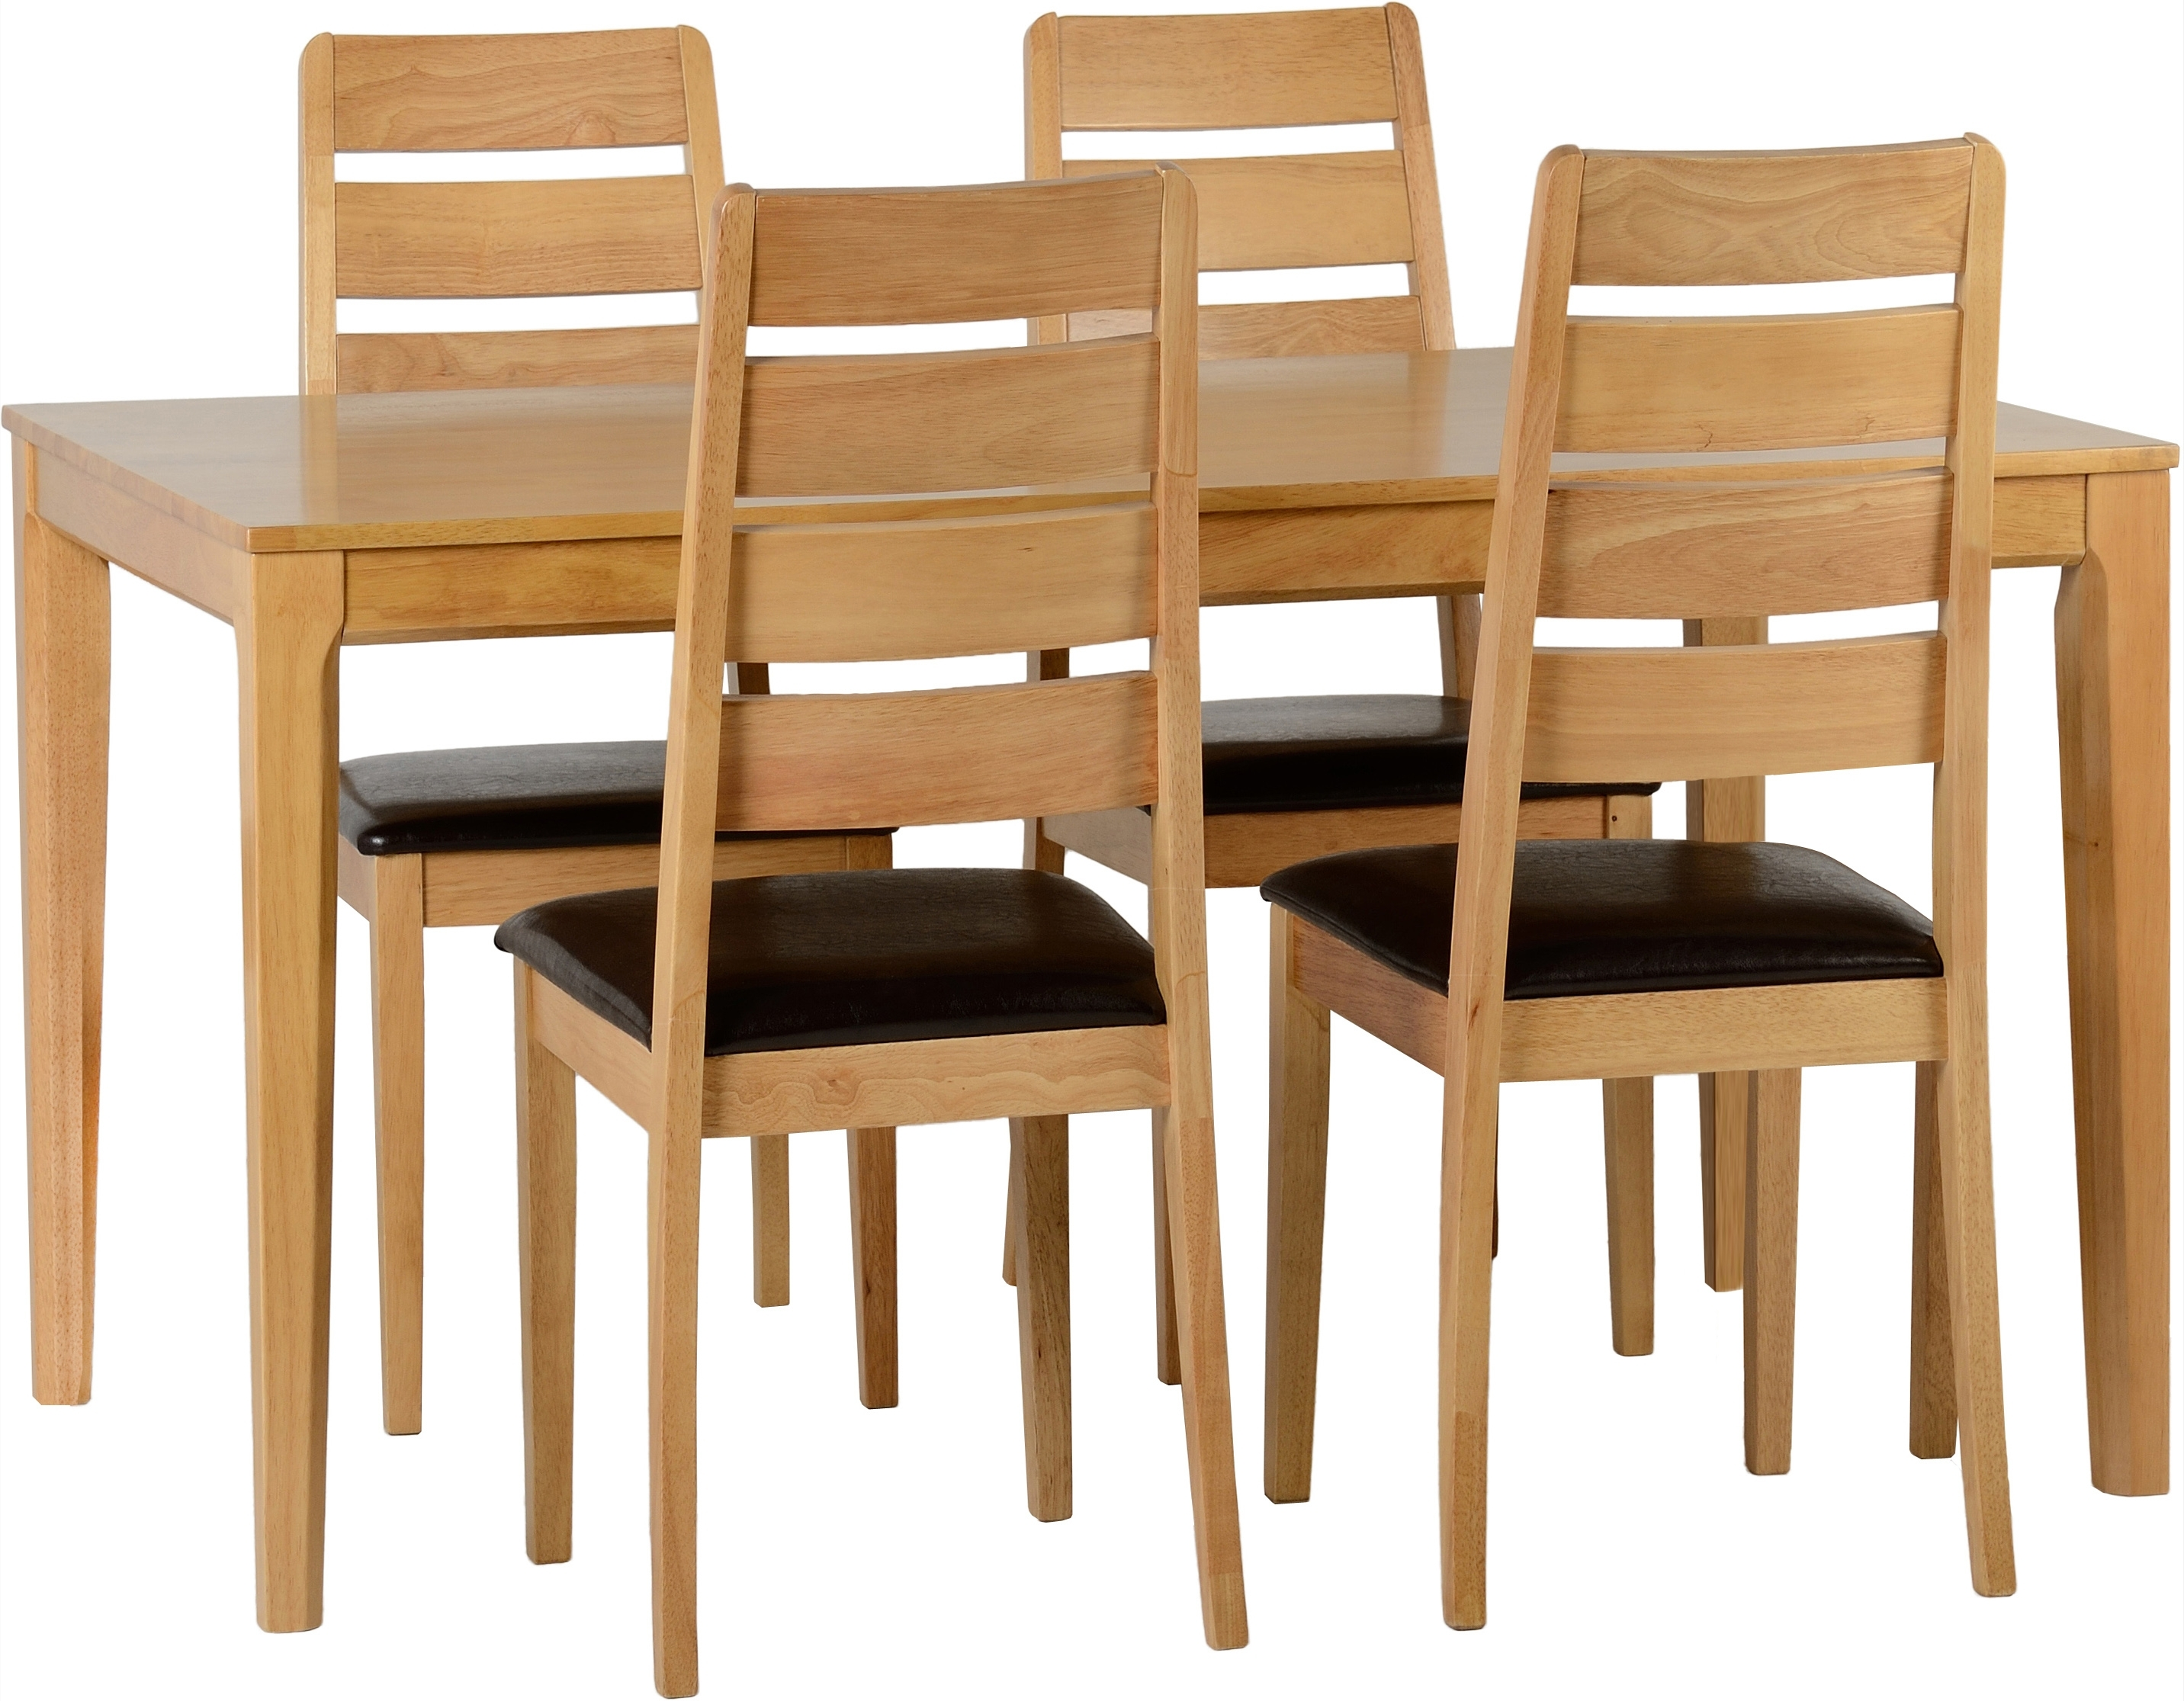 Logan Dining Tables For Most Recently Released Essex Logan Dining Table & 4 Chairs – Offersbargains (View 22 of 25)